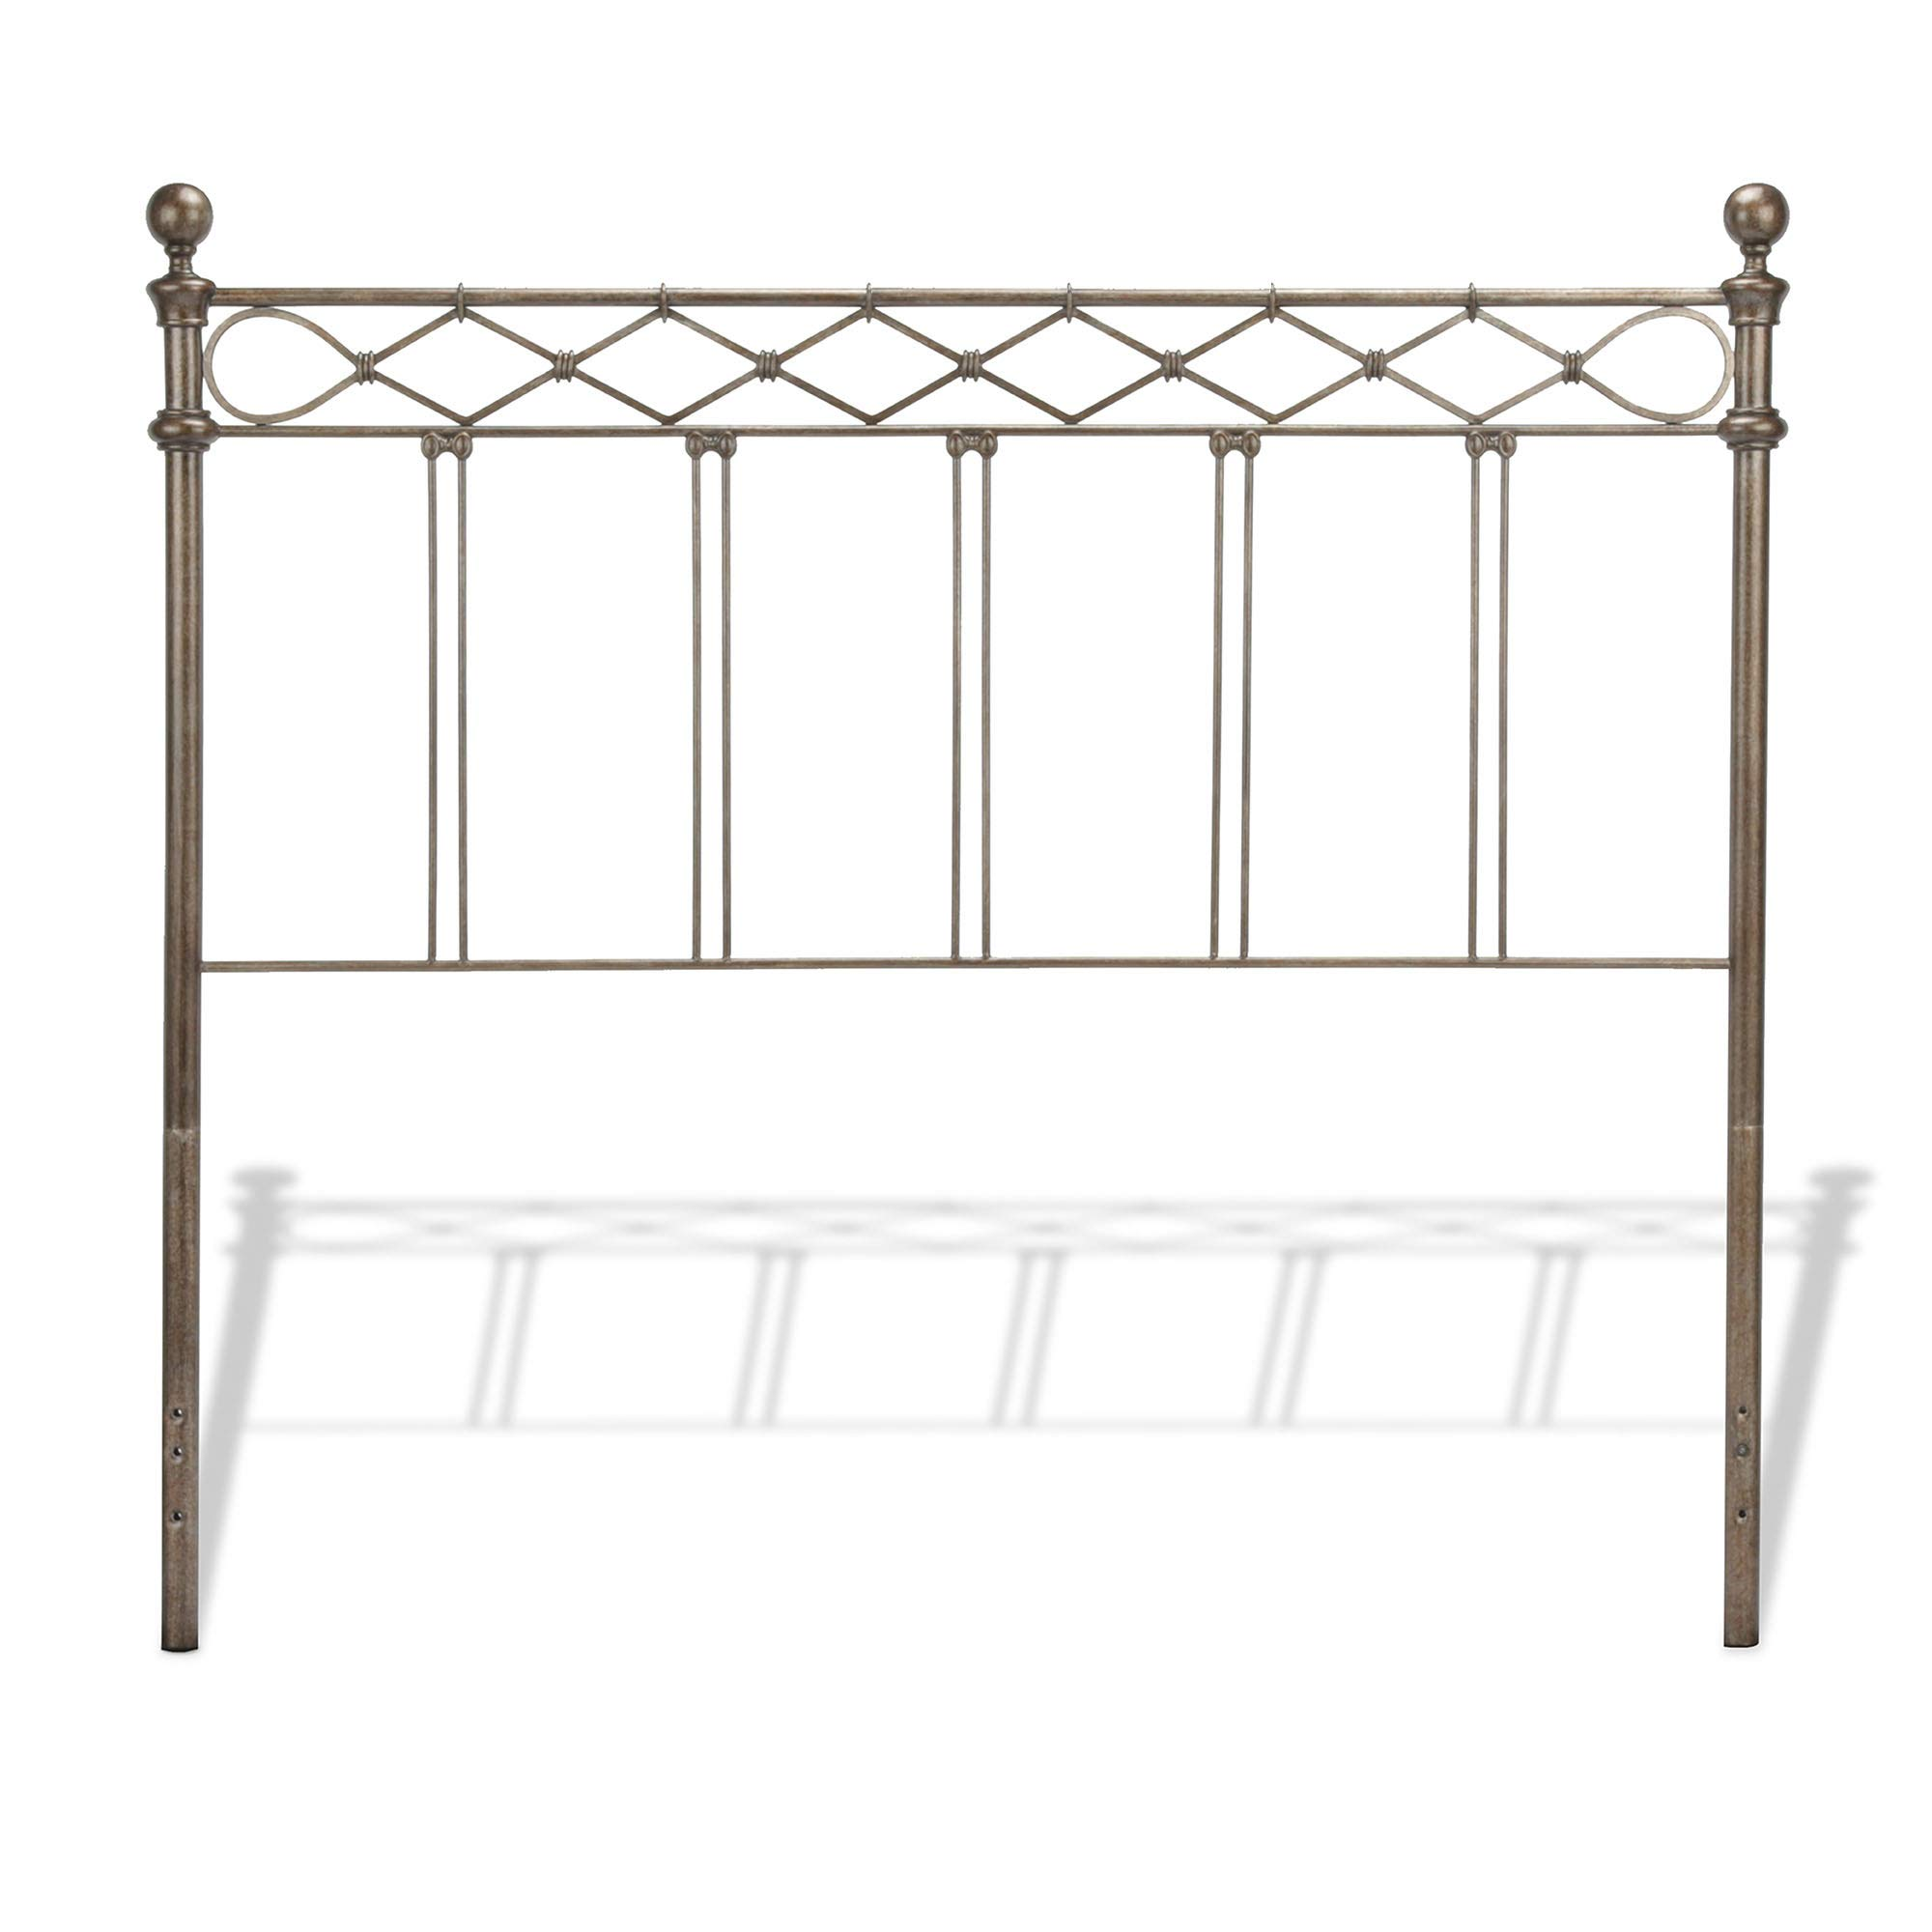 Leggett & Platt Argyle Metal Headboard Panel with Diamond Pattern Top Rail and Double Spindle Castings, Copper Chrome Finish, King